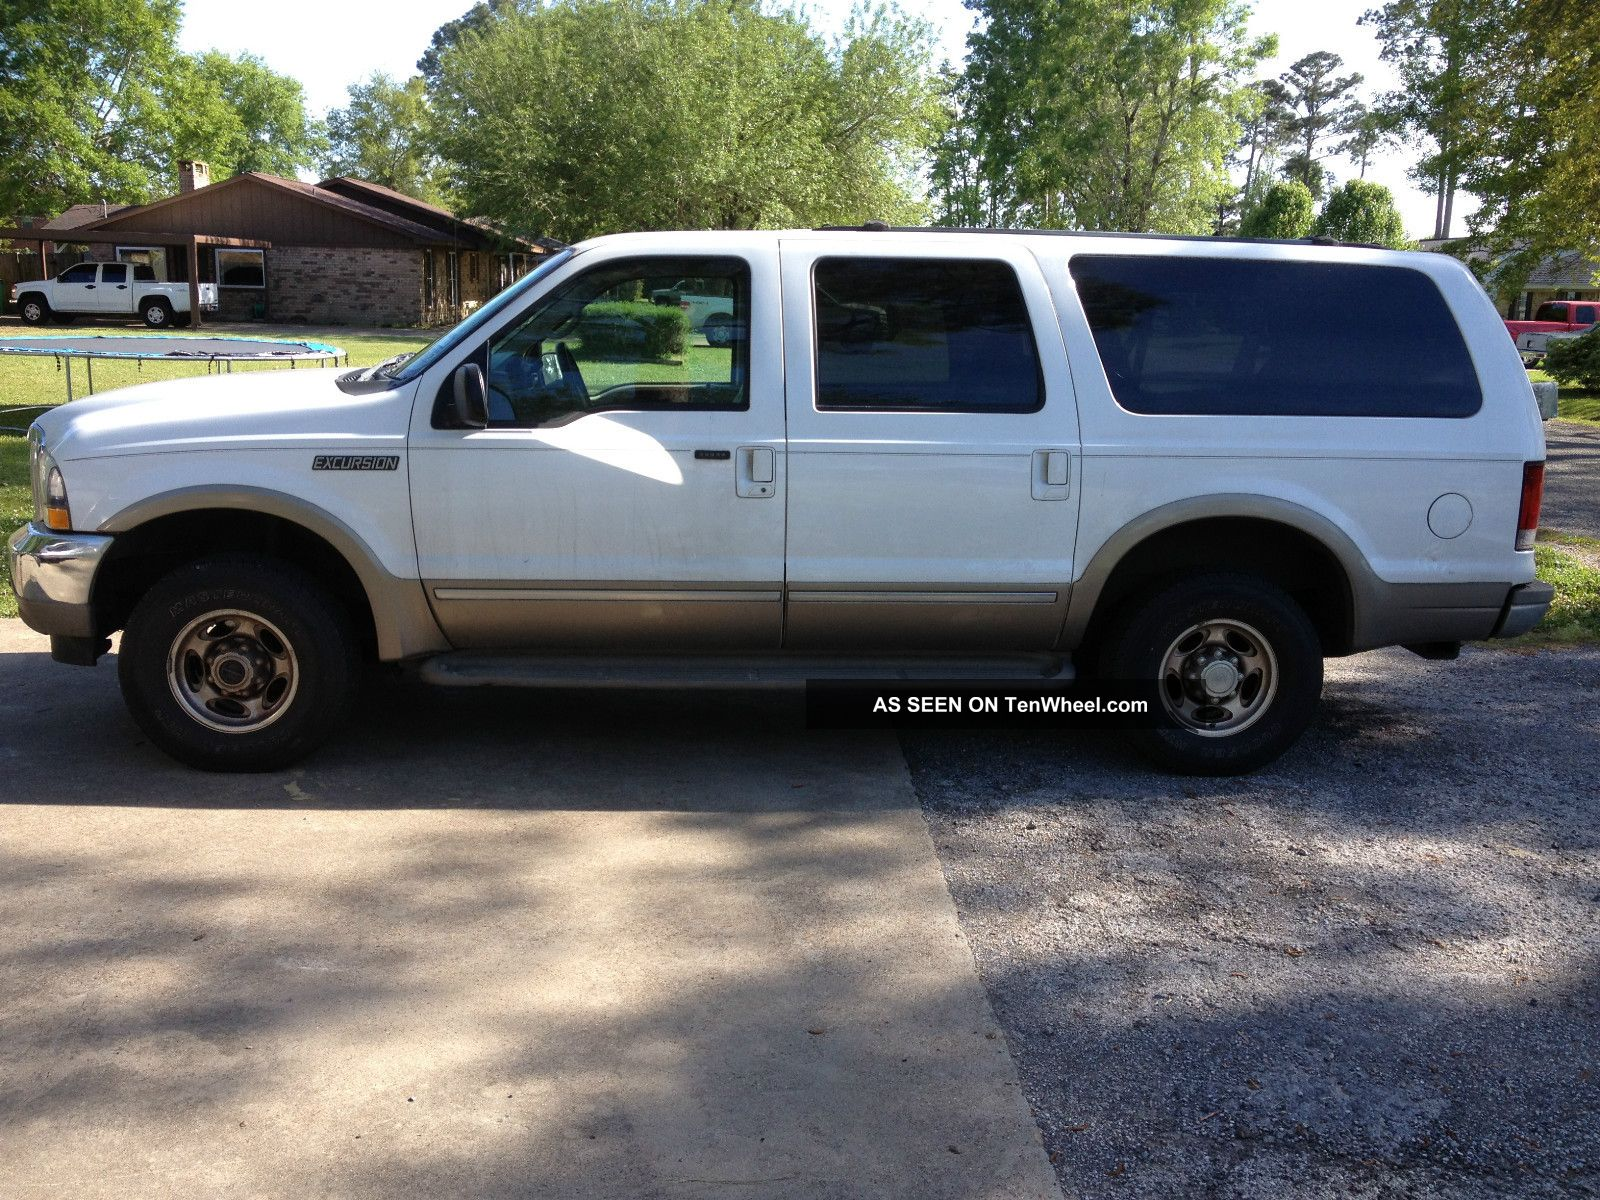 14 Passenger Super Stretch Ford Excursion Suv together with 2007 Ford Expedition also Wiring For Tv And Dvd Player as well Sale in addition Read. on ford excursion dvd